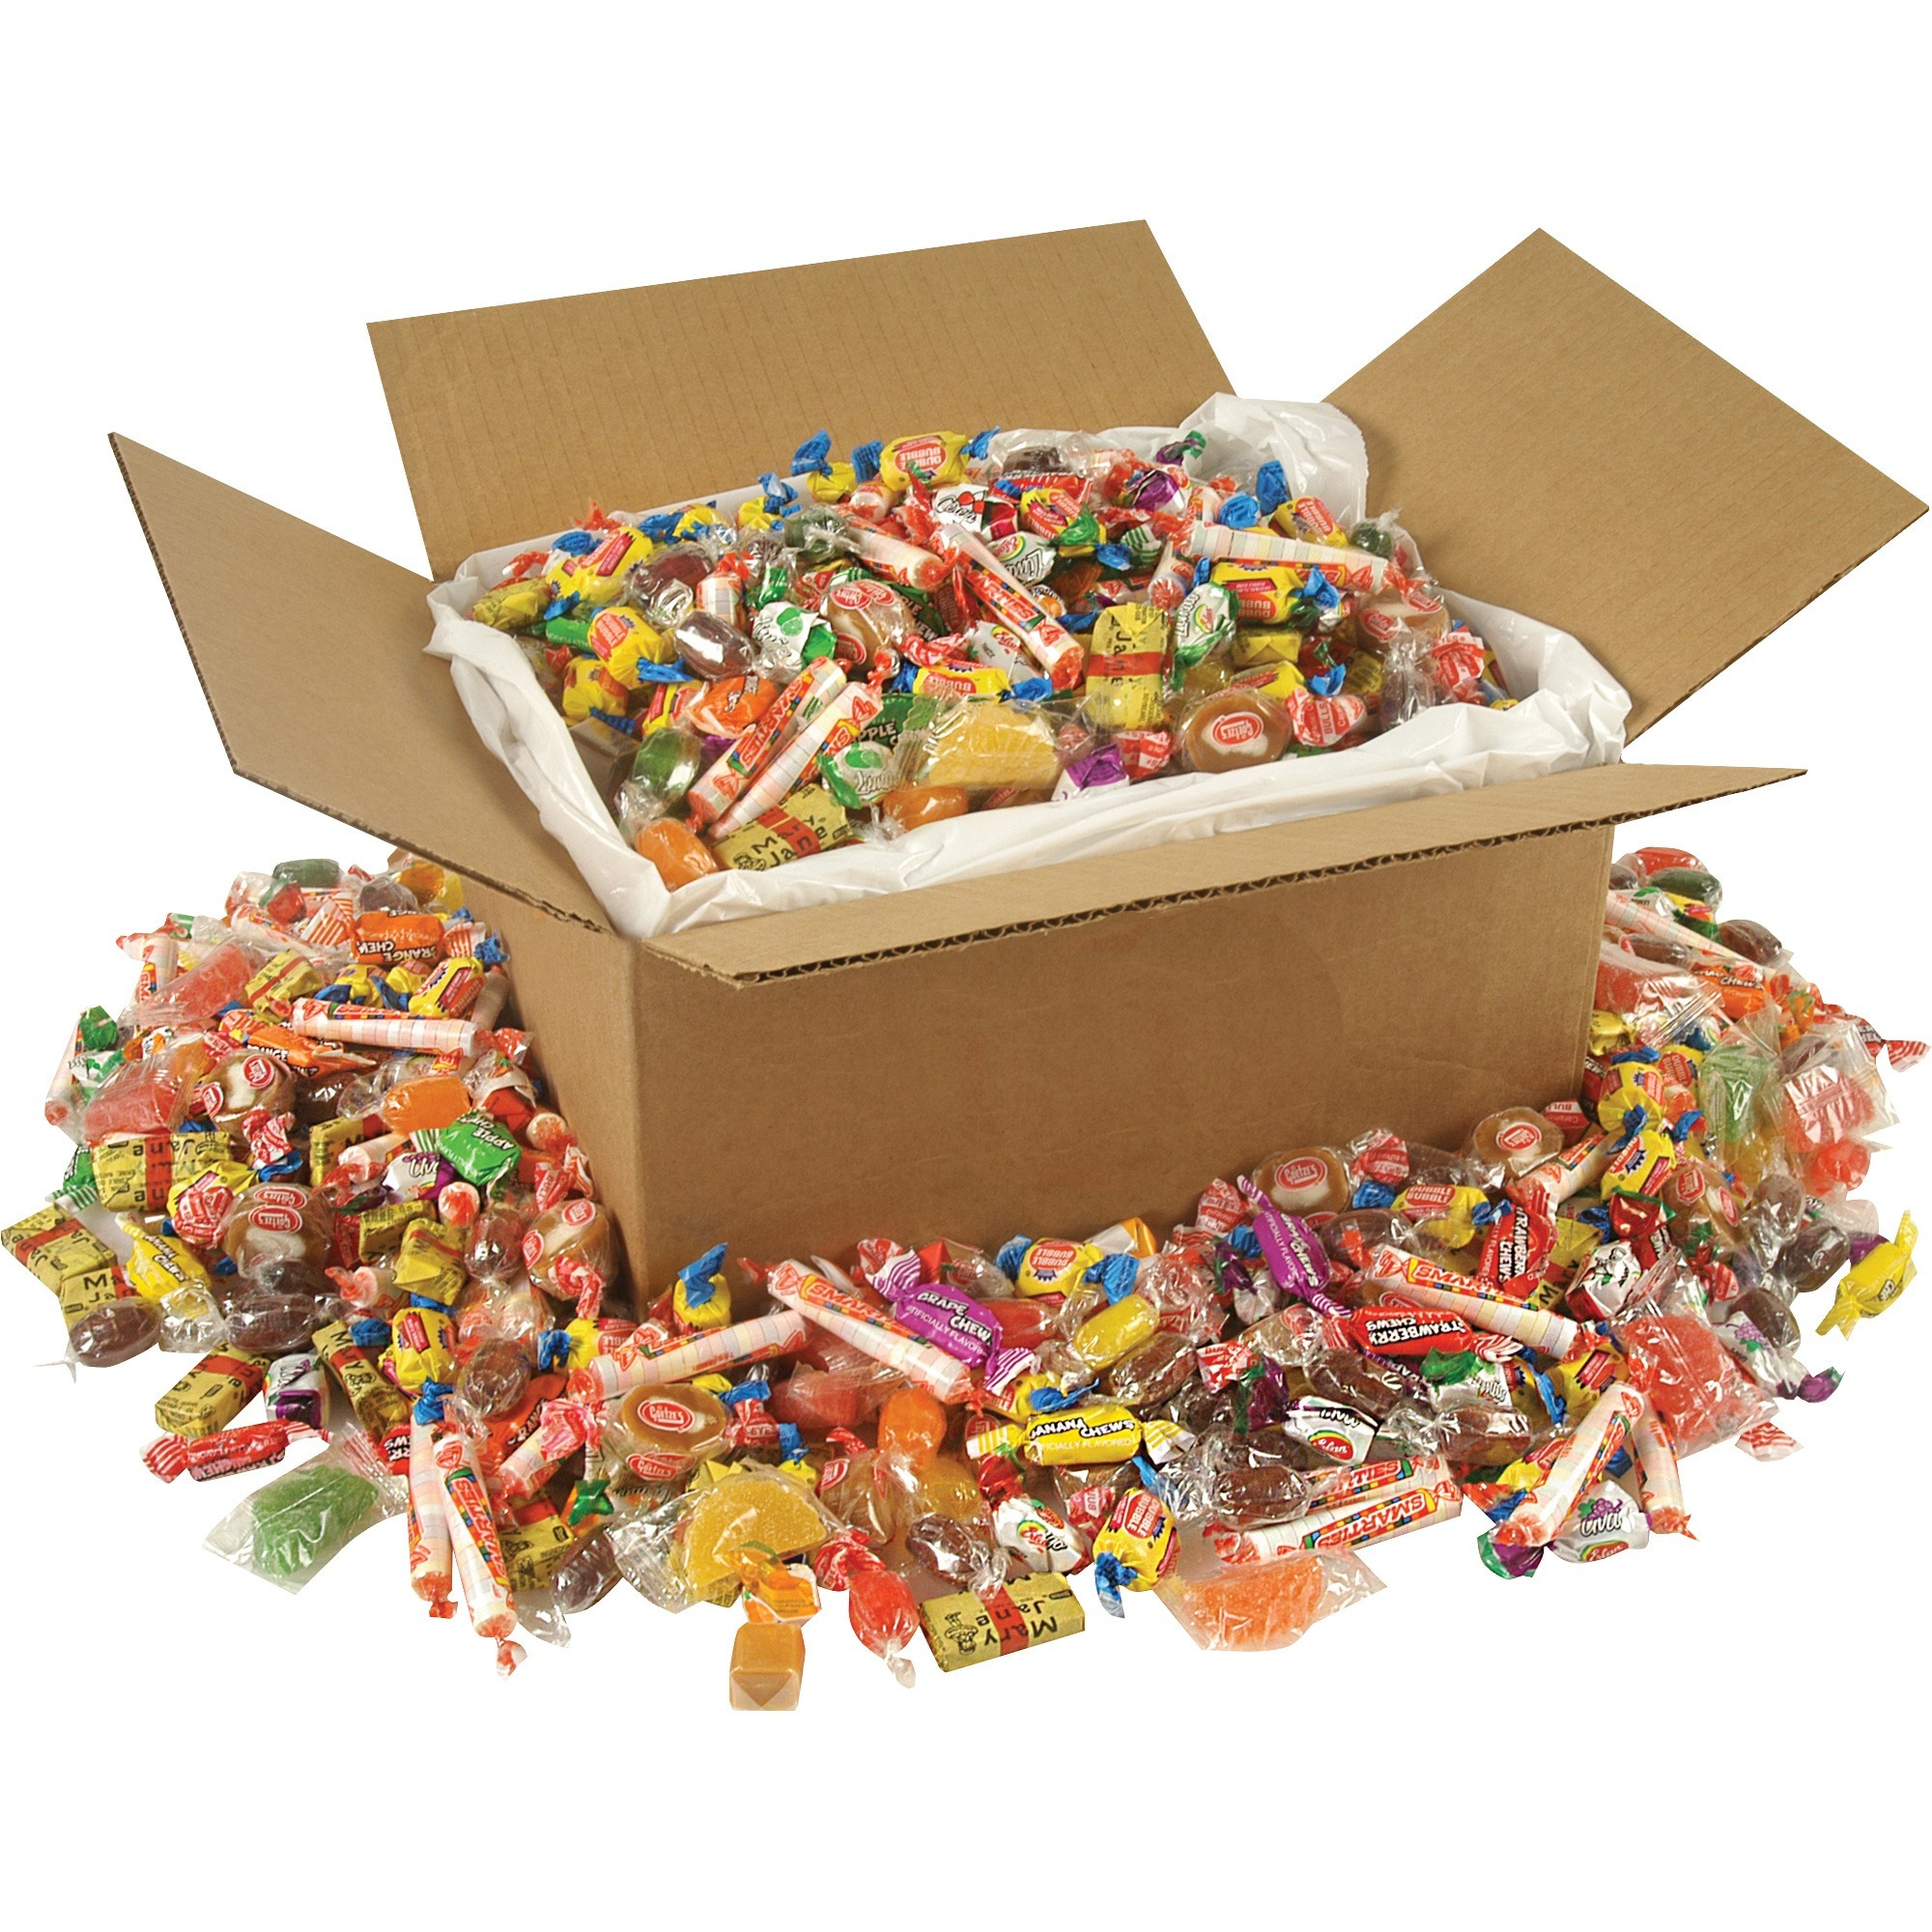 10-lb Box of Office Snax All Tyme Favorites Candy Mix (OFX-00085)